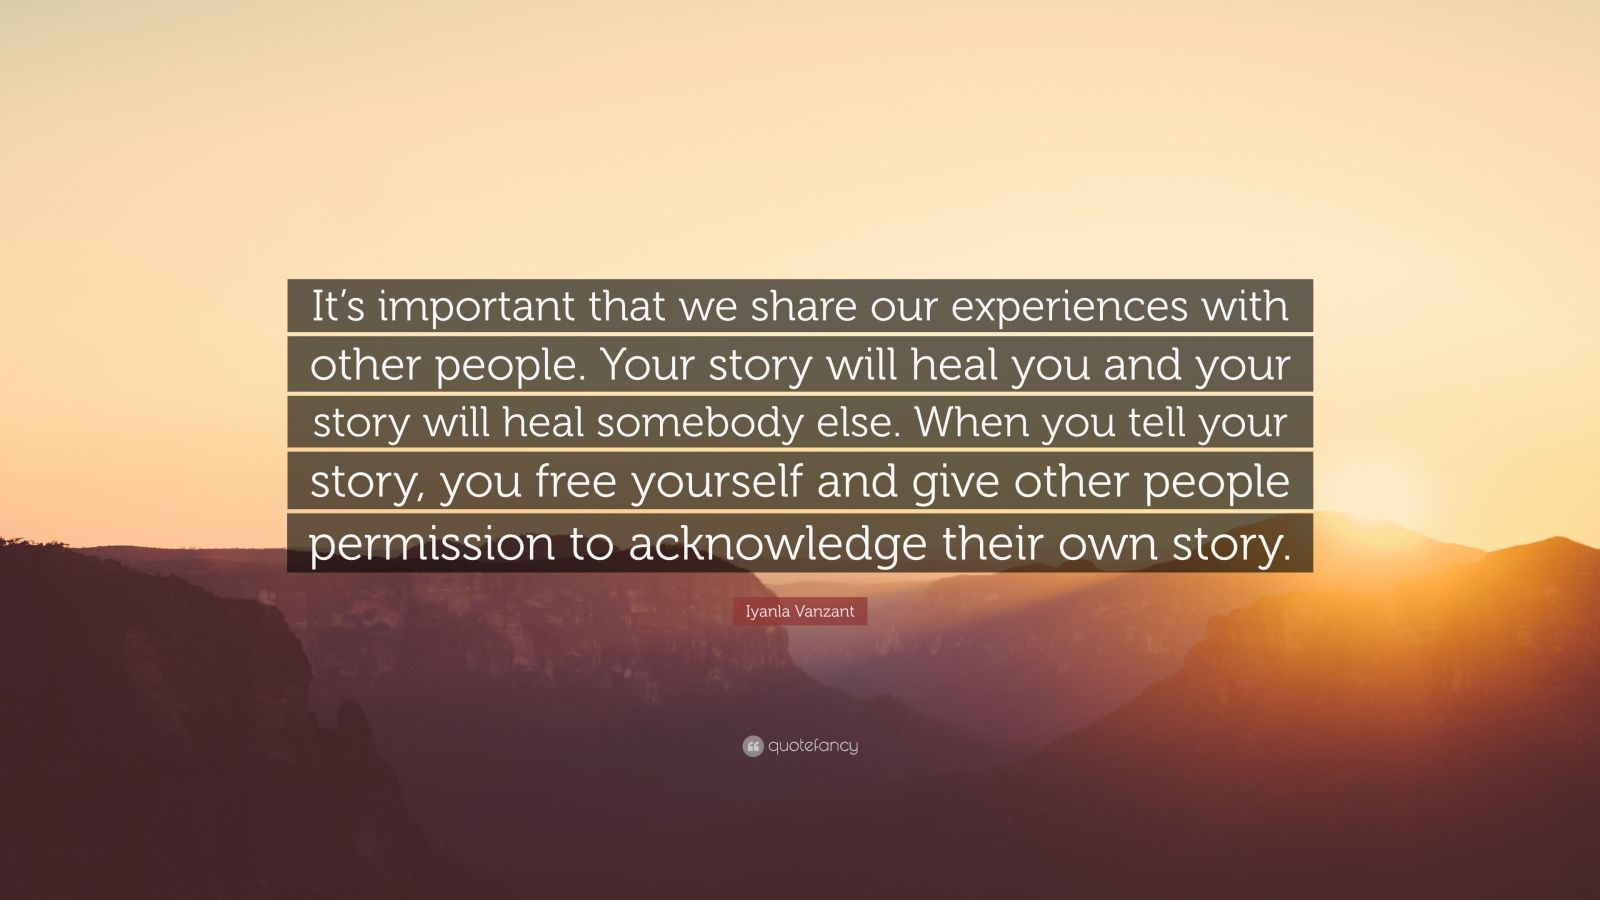 """Iyanla Vanzant Quote: """"It's important that we share our experiences with other people. Your story will heal you and your story will heal somebody else. When you tell your story, you free yourself and give other people permission to acknowledge their own story."""""""